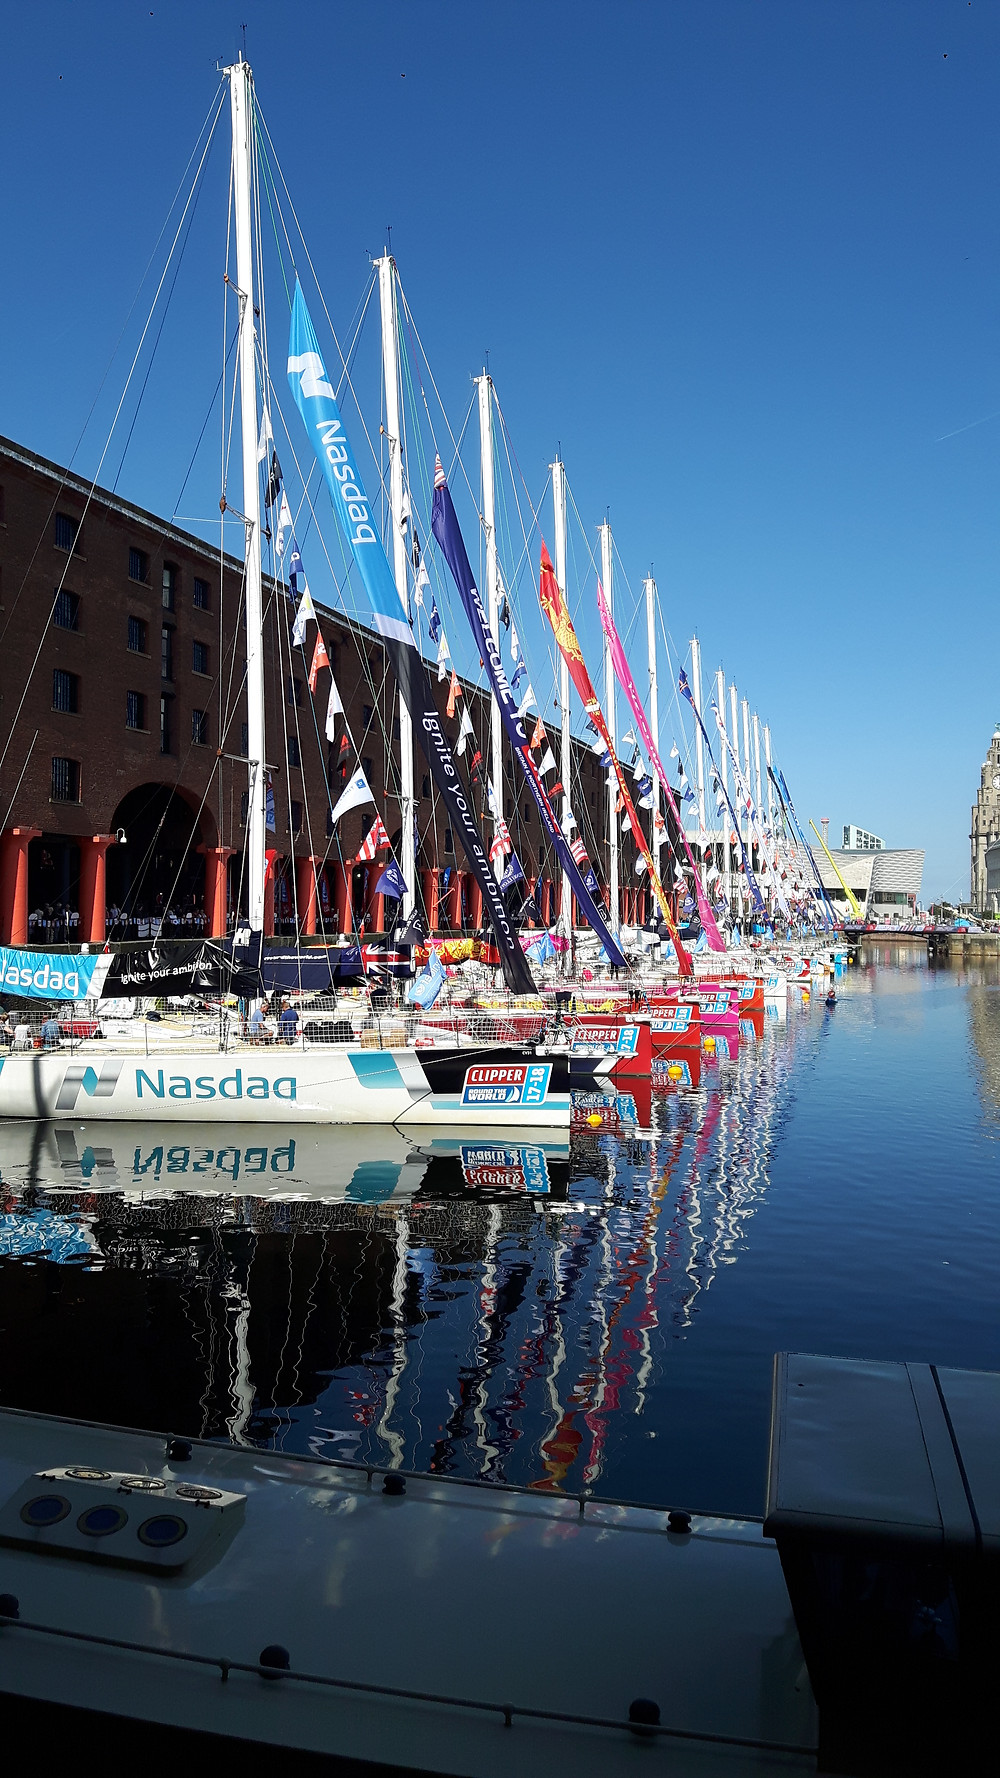 The Clipper Round the World Yacht Race 17/18 boats at the Albert Dock (Aug '17)